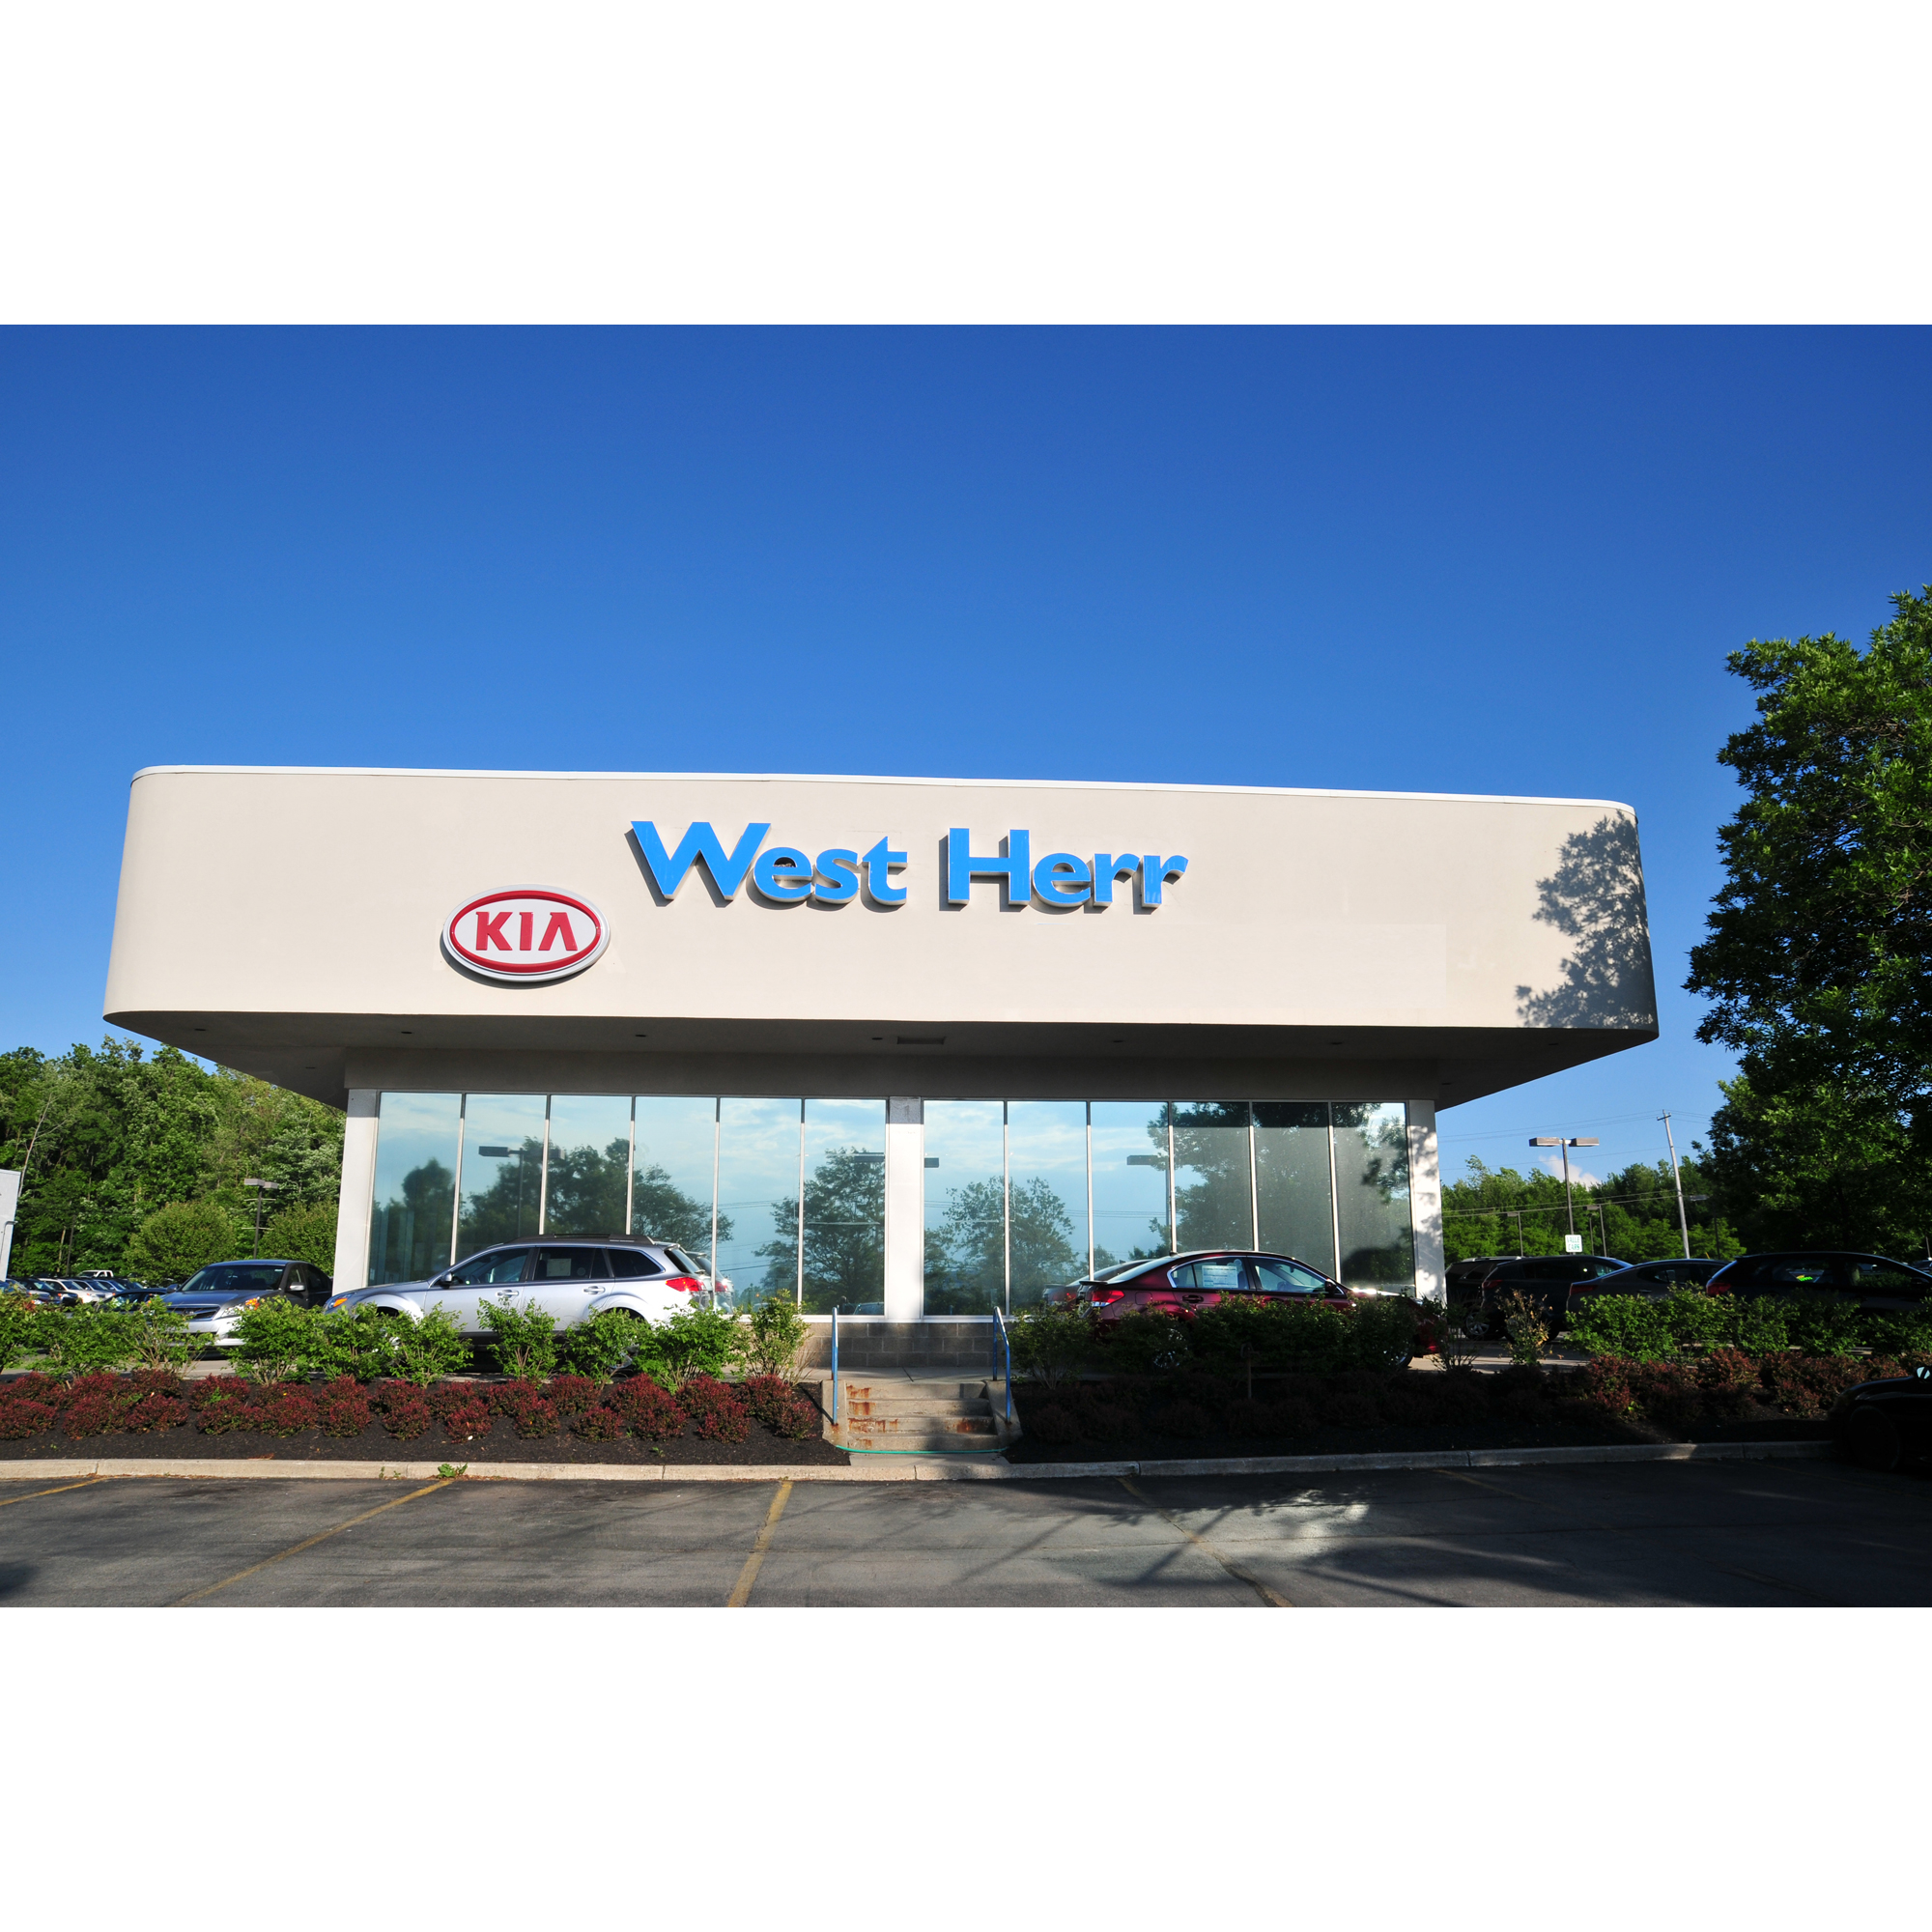 West Herr Kia